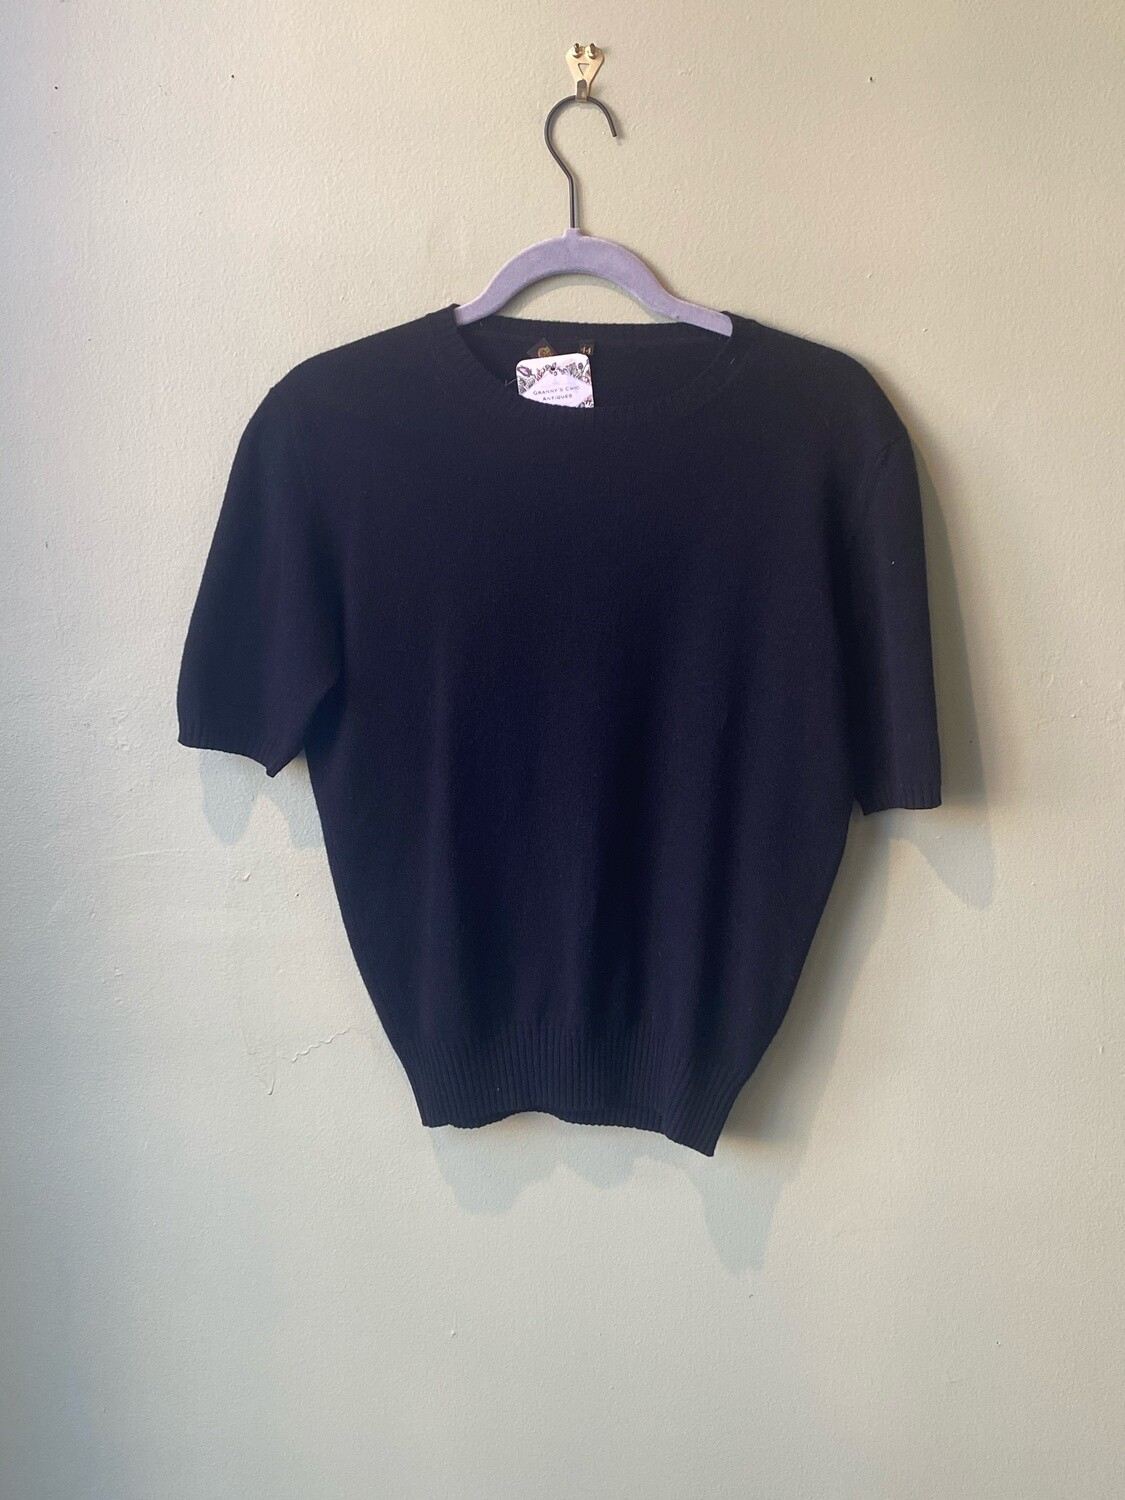 Loro Piana 100% Cashmere Sweater, Made in Italy, Size 44